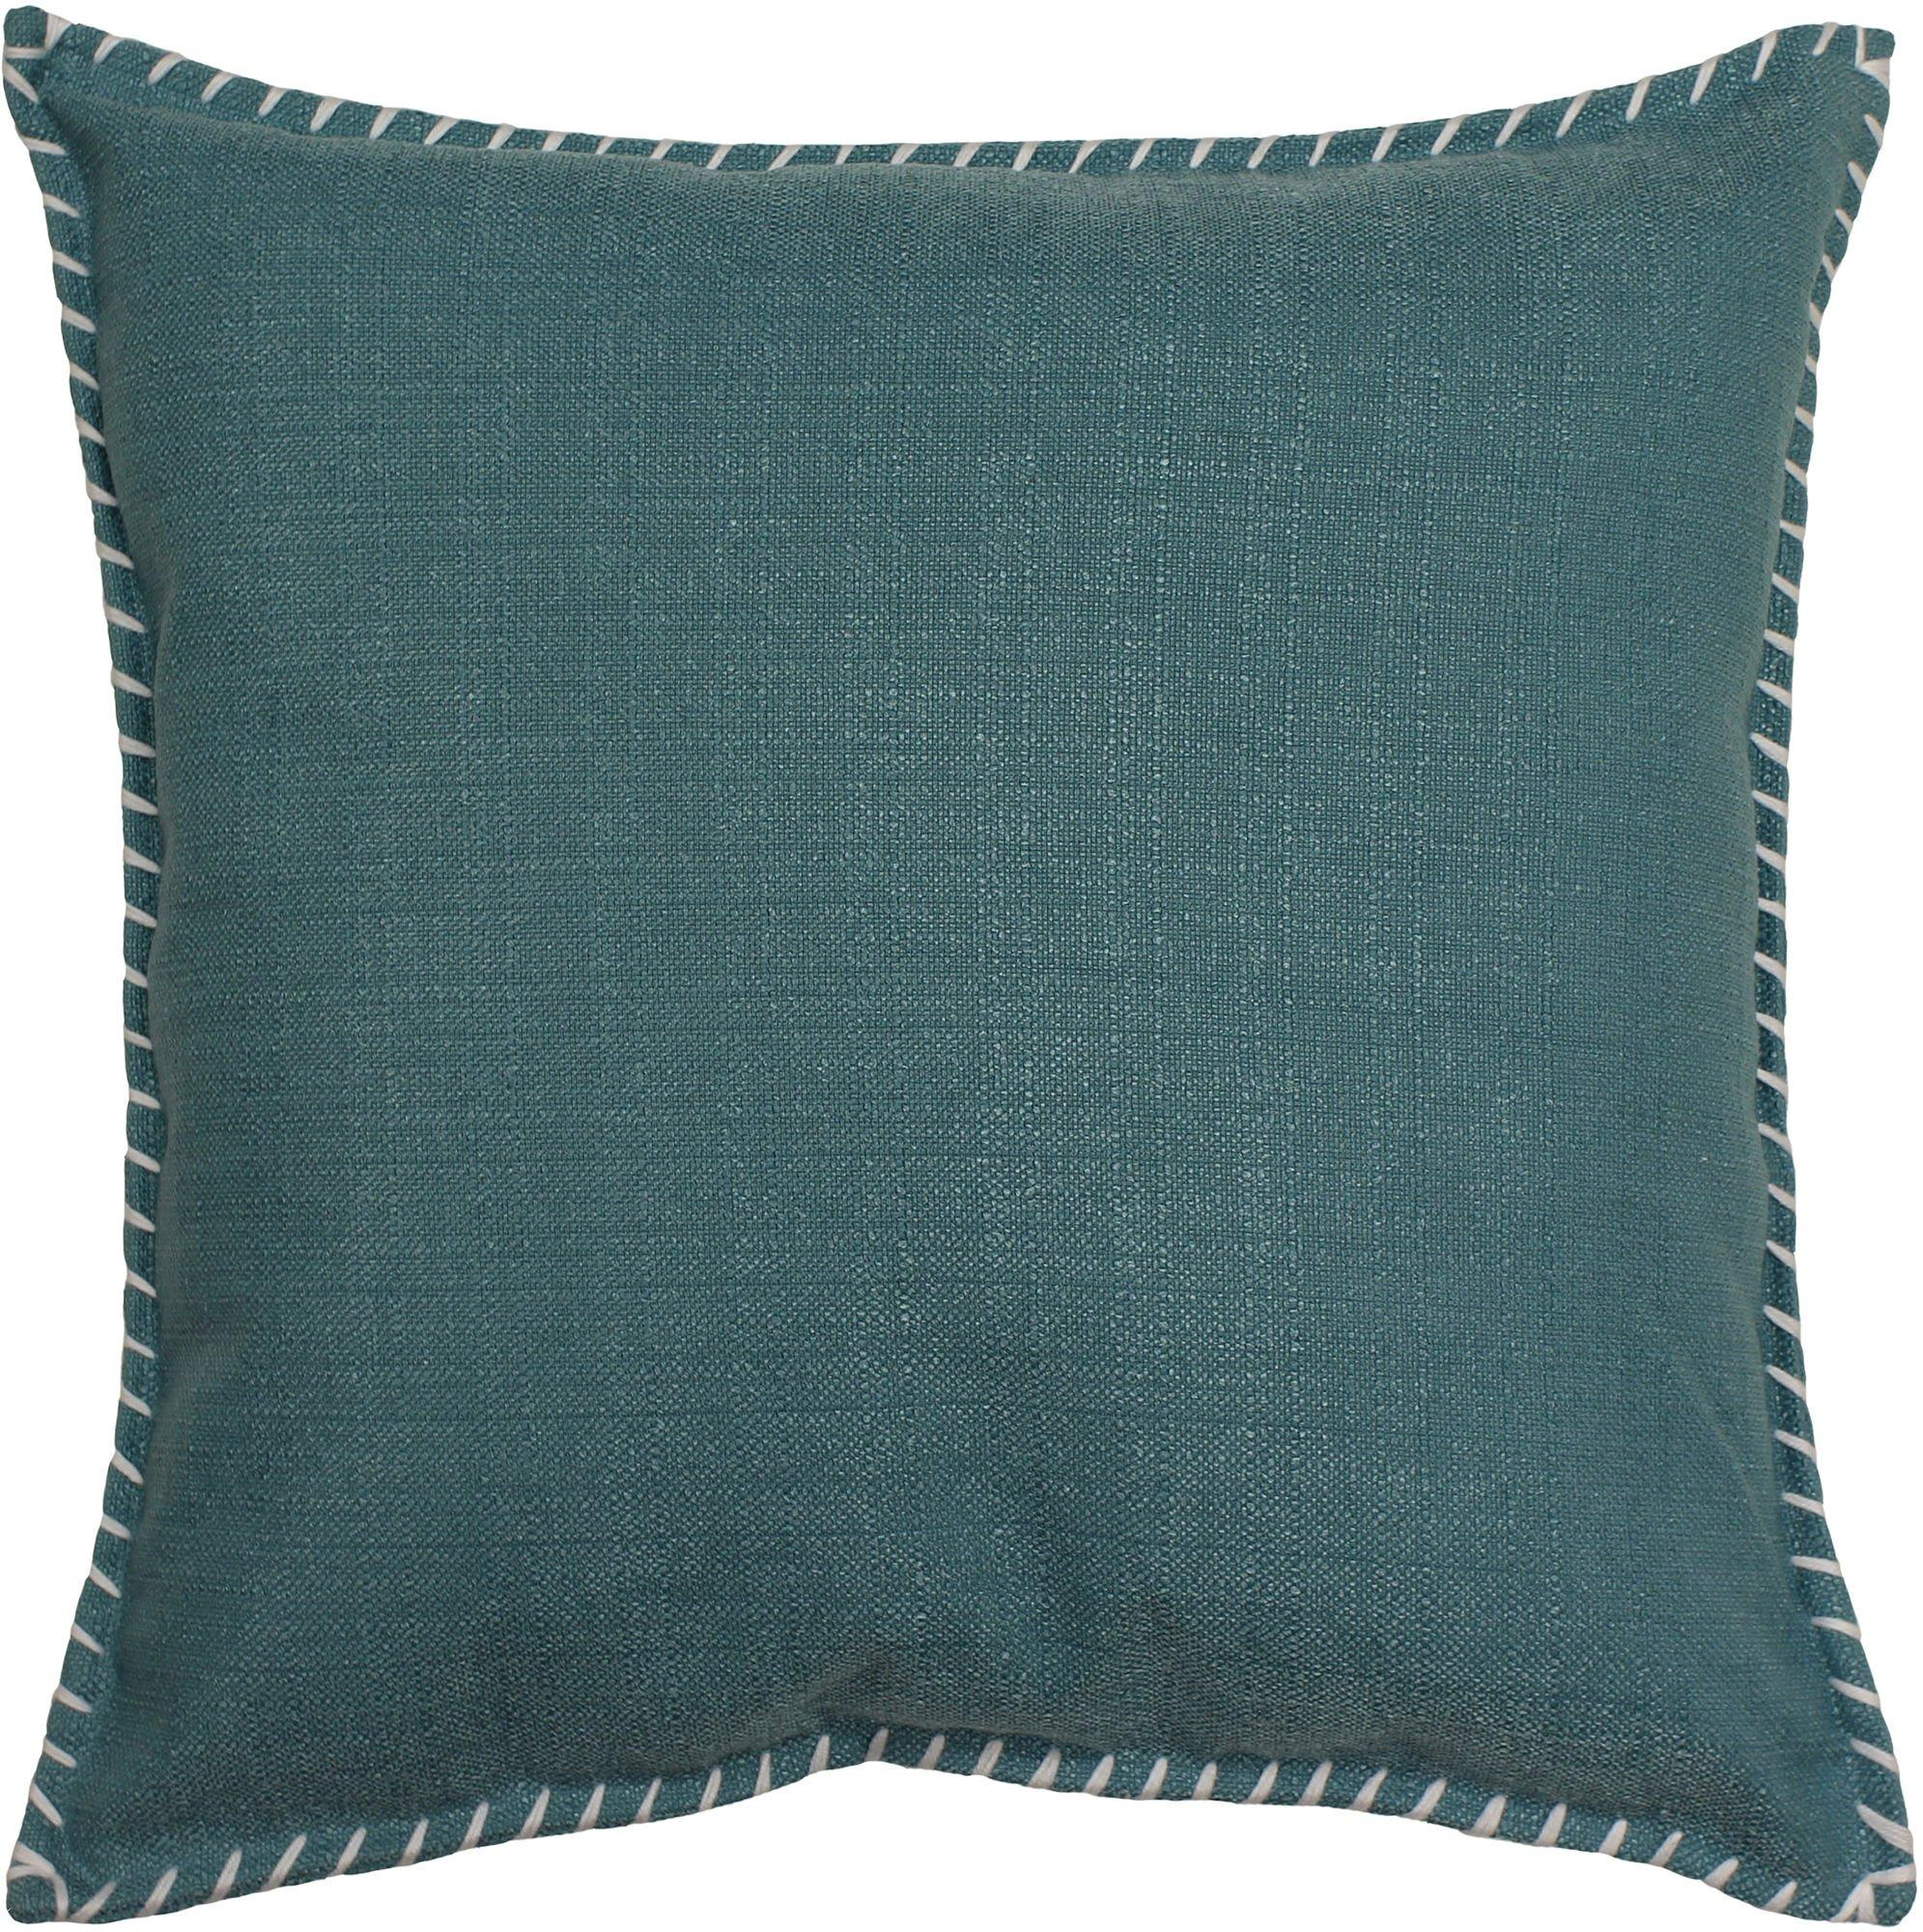 Dynasty Decorative Pillows : Home Fashion Dynasty Whipstitch Decorative Pillow Bealls Florida